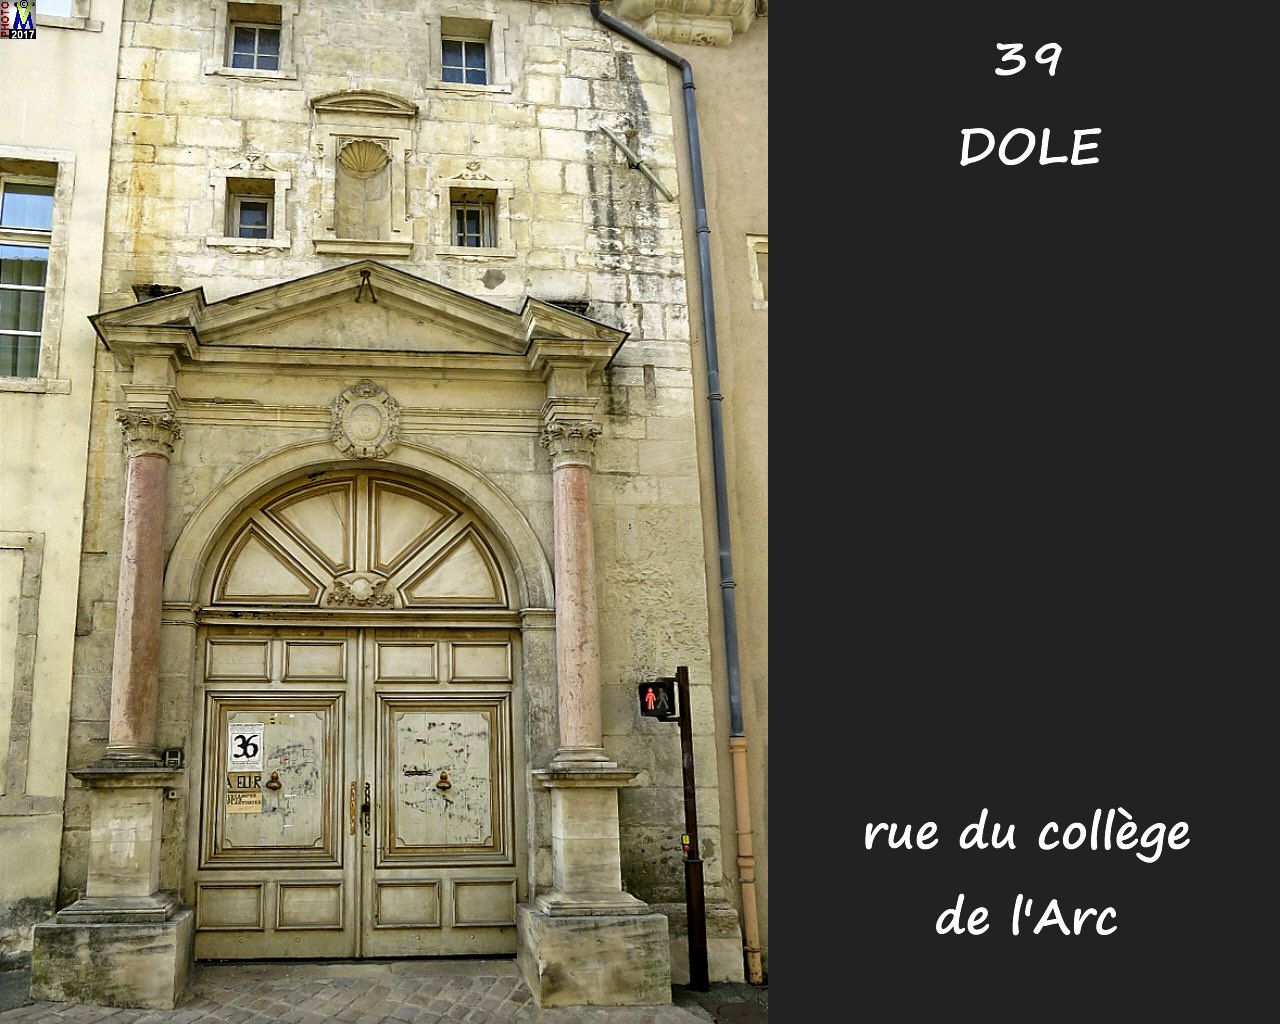 39DOLE_rue-college-Arc-120.jpg